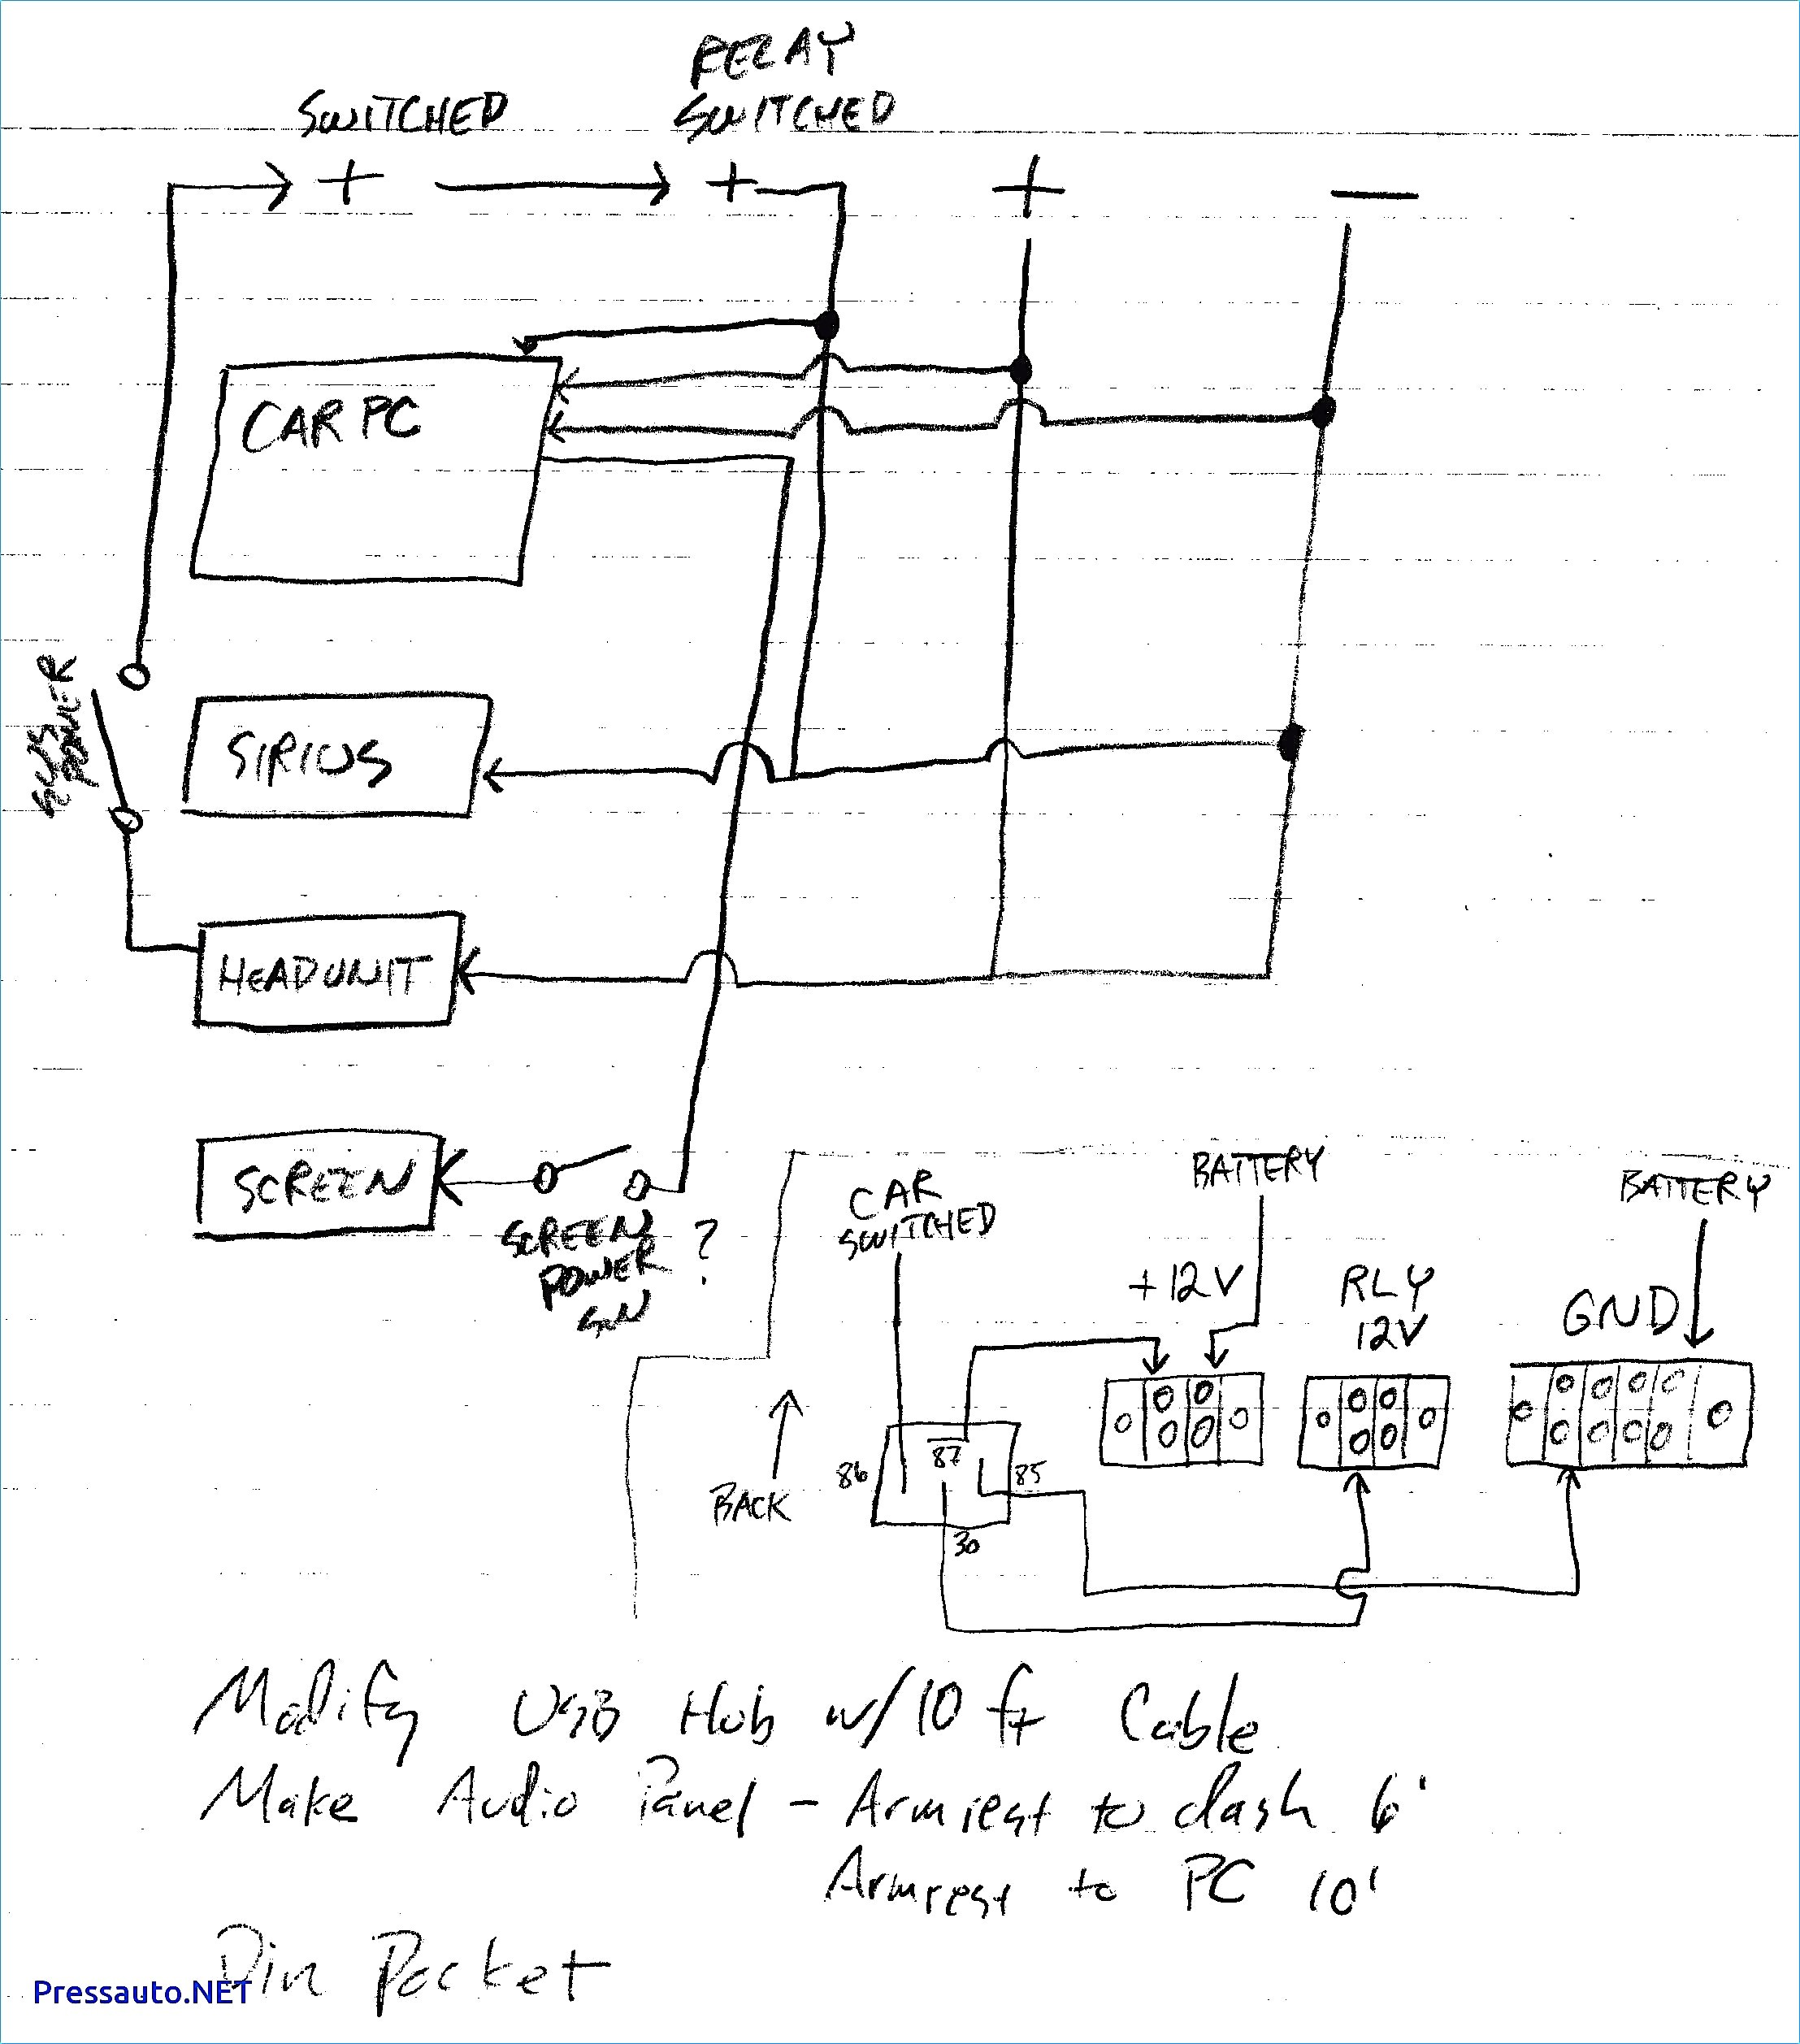 Boss Plow Wiring Diagram Truck Side Boss Plow Wiring Diagram – Elektronik Of Boss Plow Wiring Diagram Truck Side